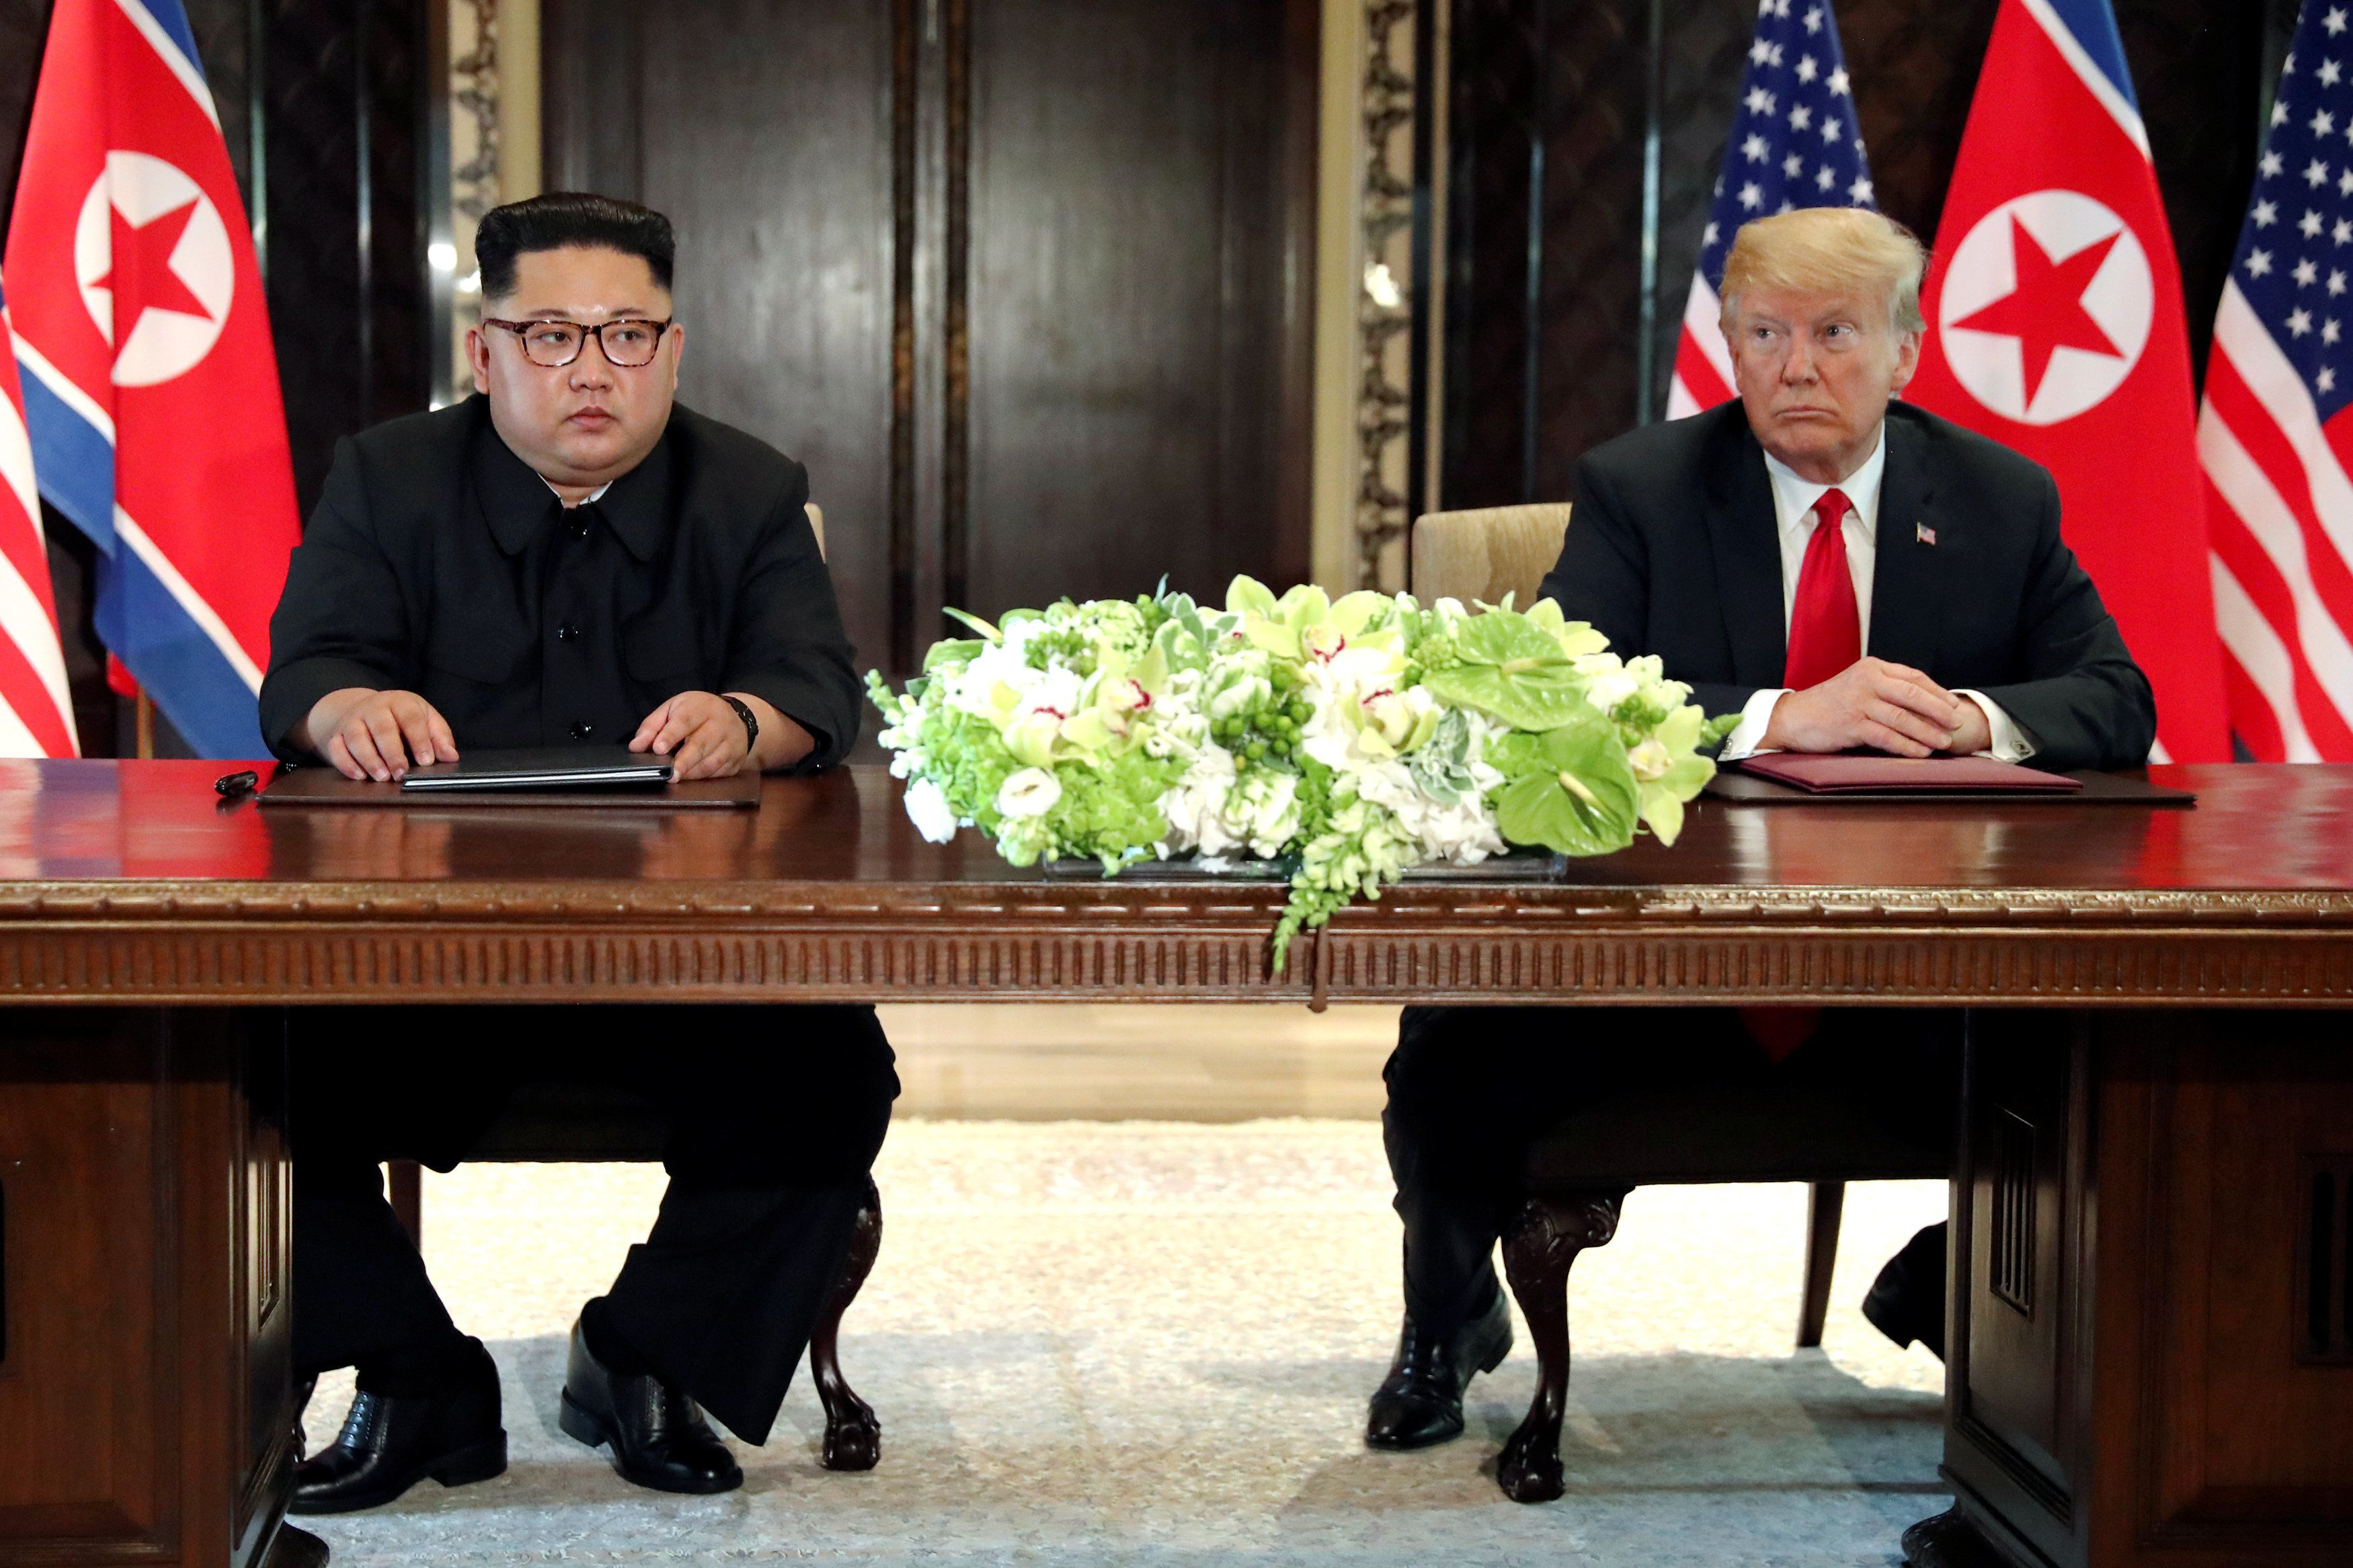 President Donald Trump met with North Korean leader Kim Jong Un earlier this week, the first time a sitting U.S. preside